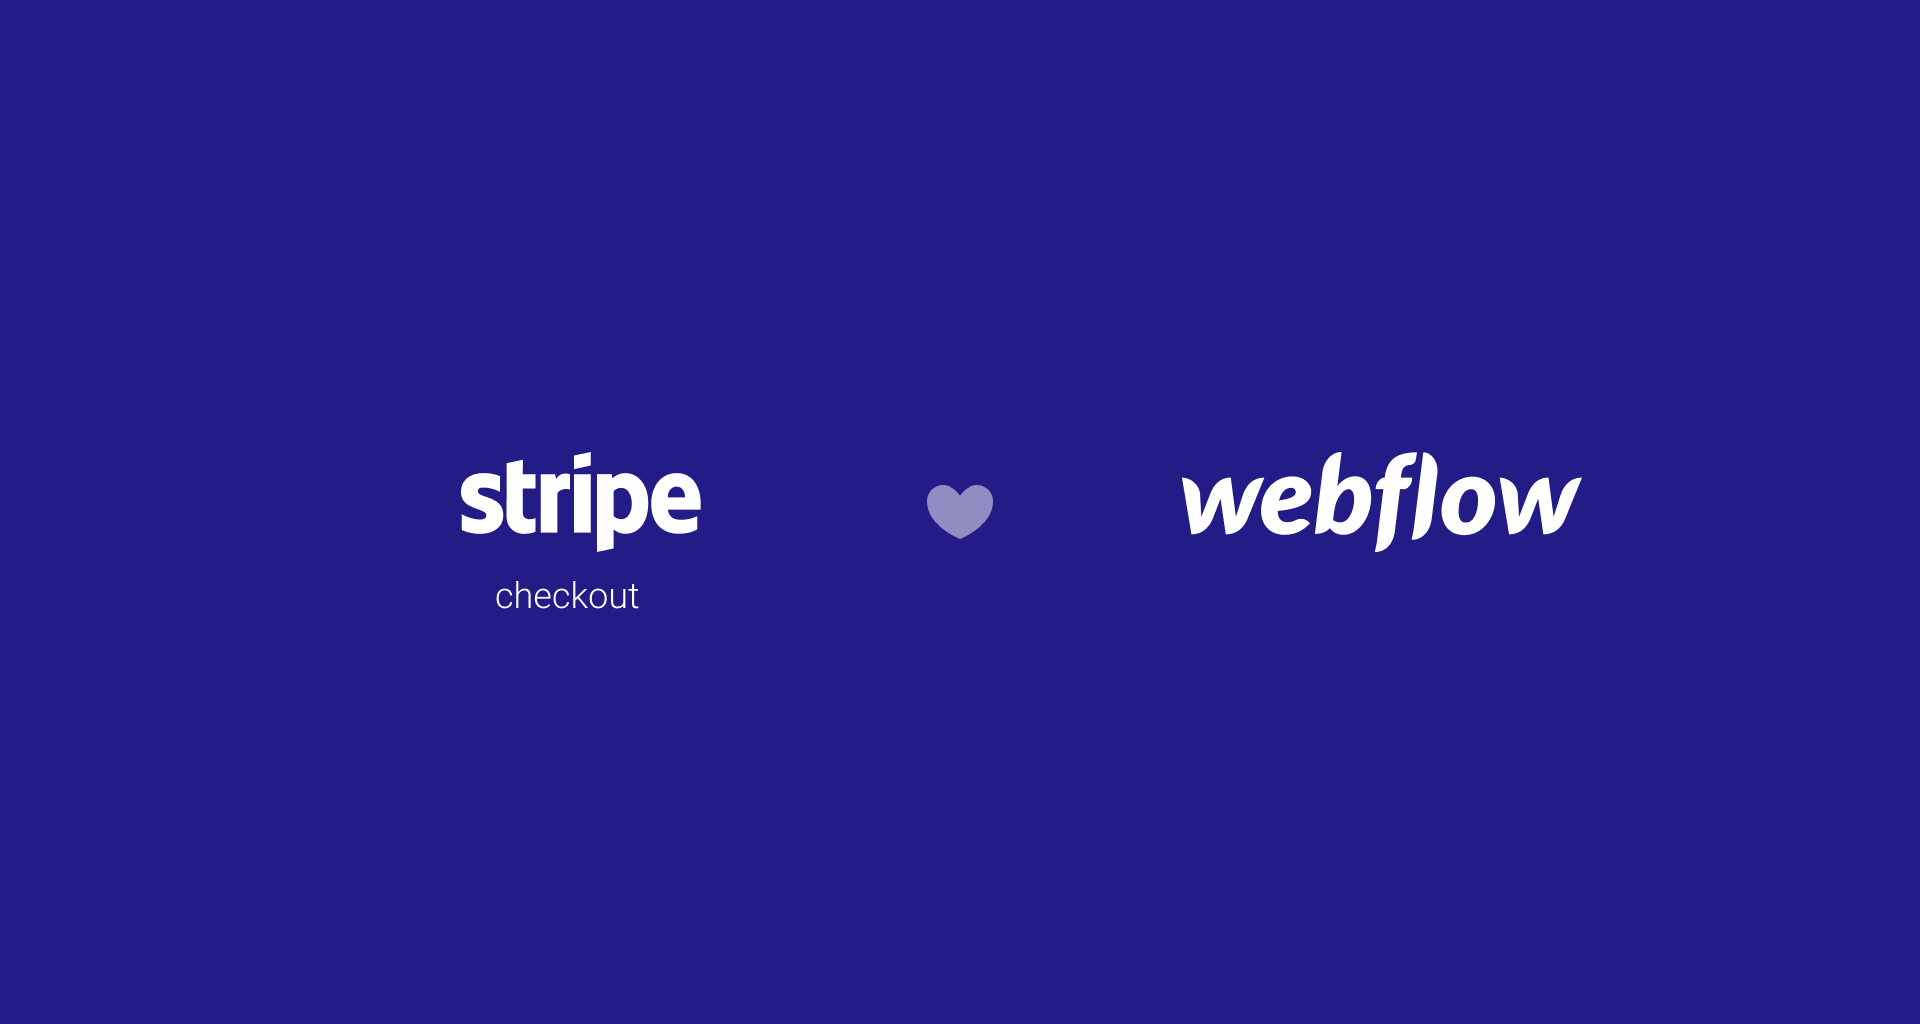 Adding Stripe Checkout to your Webflow site